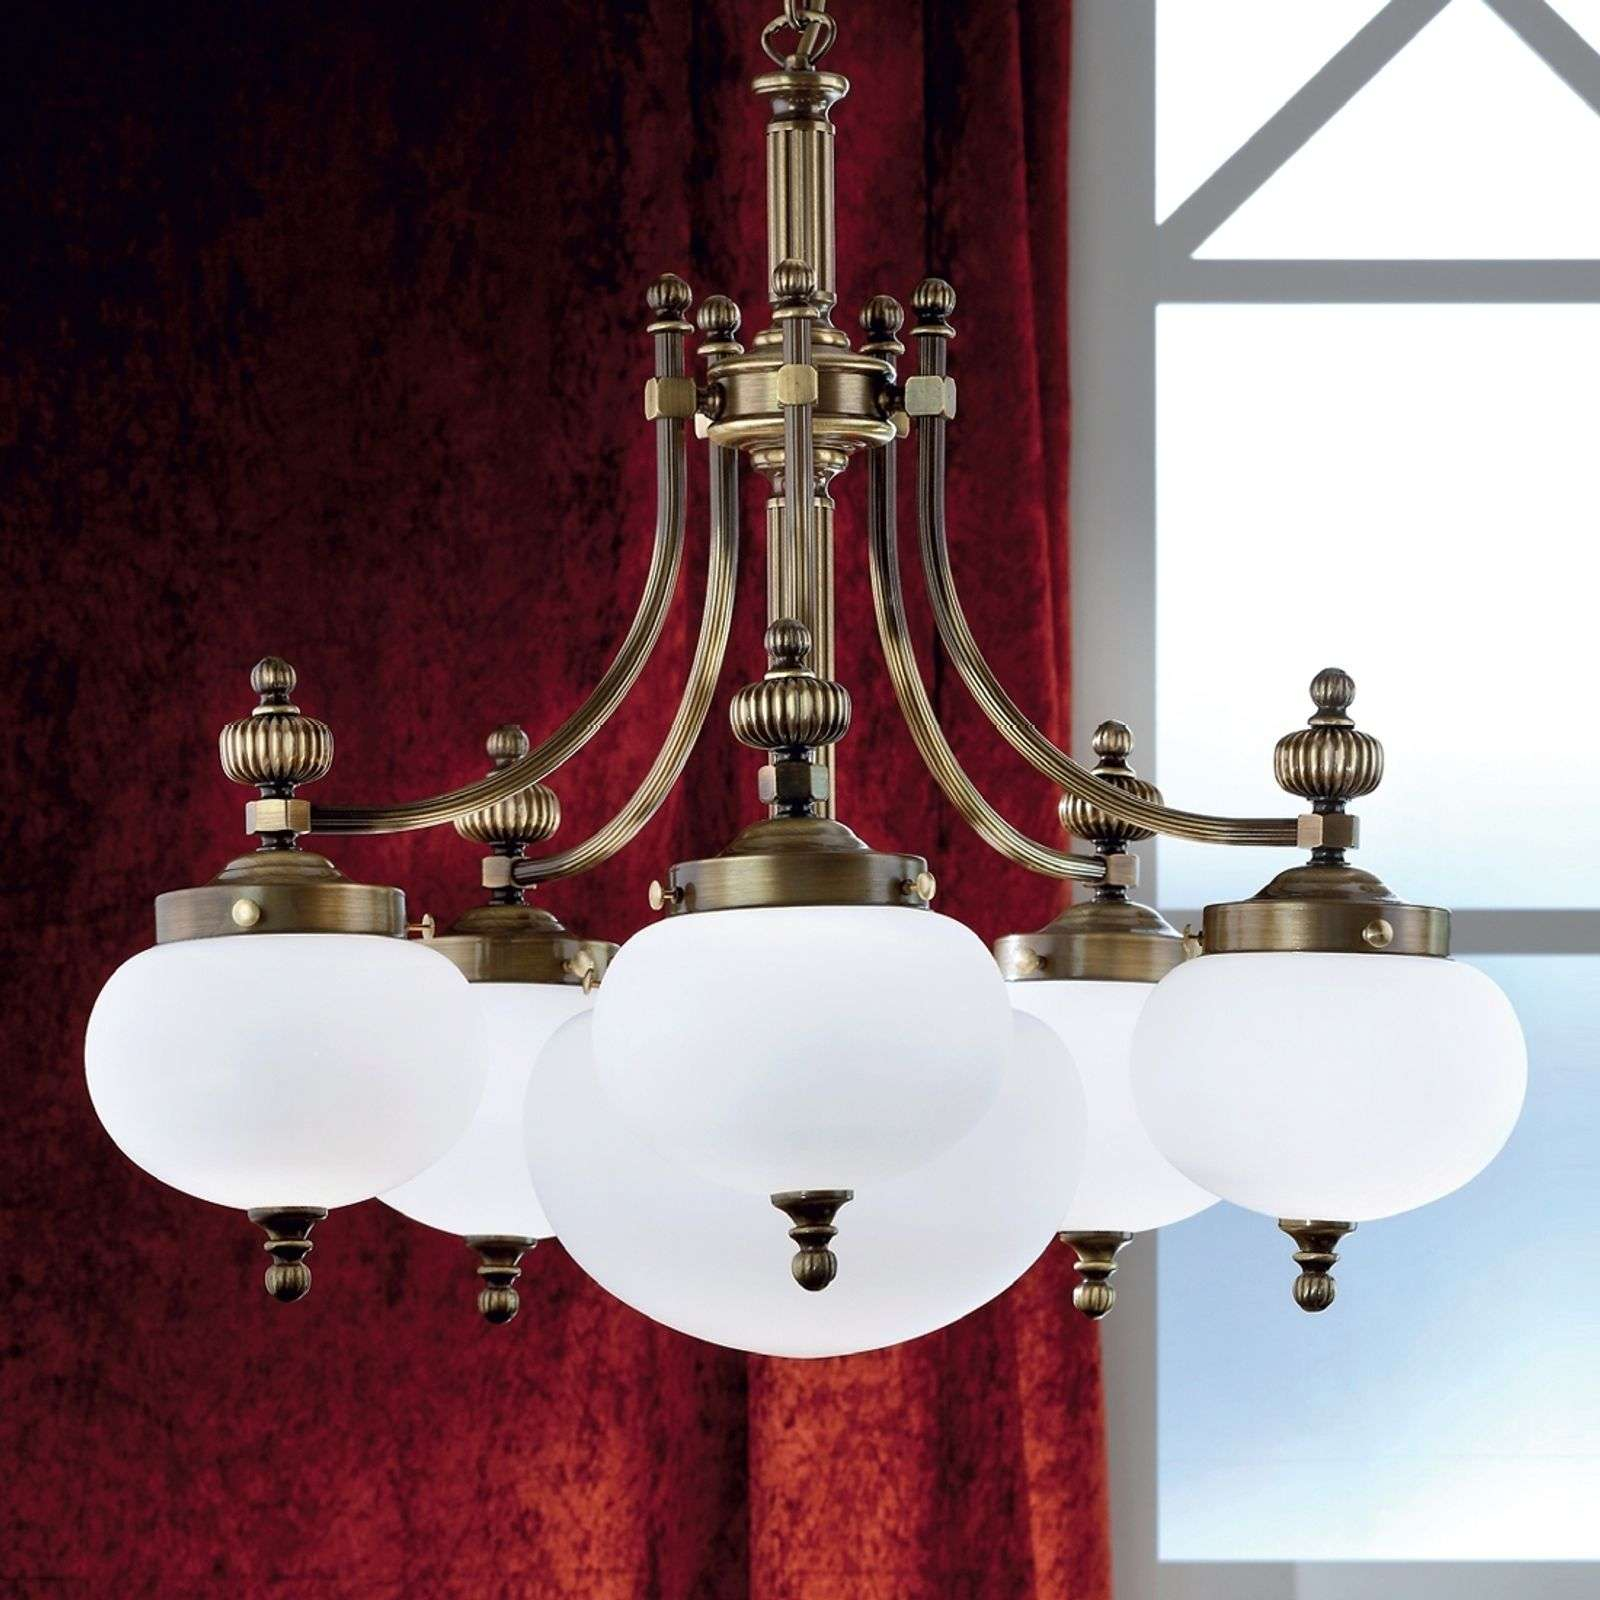 Suspension 6 lumières noble DELIA, laiton ancien